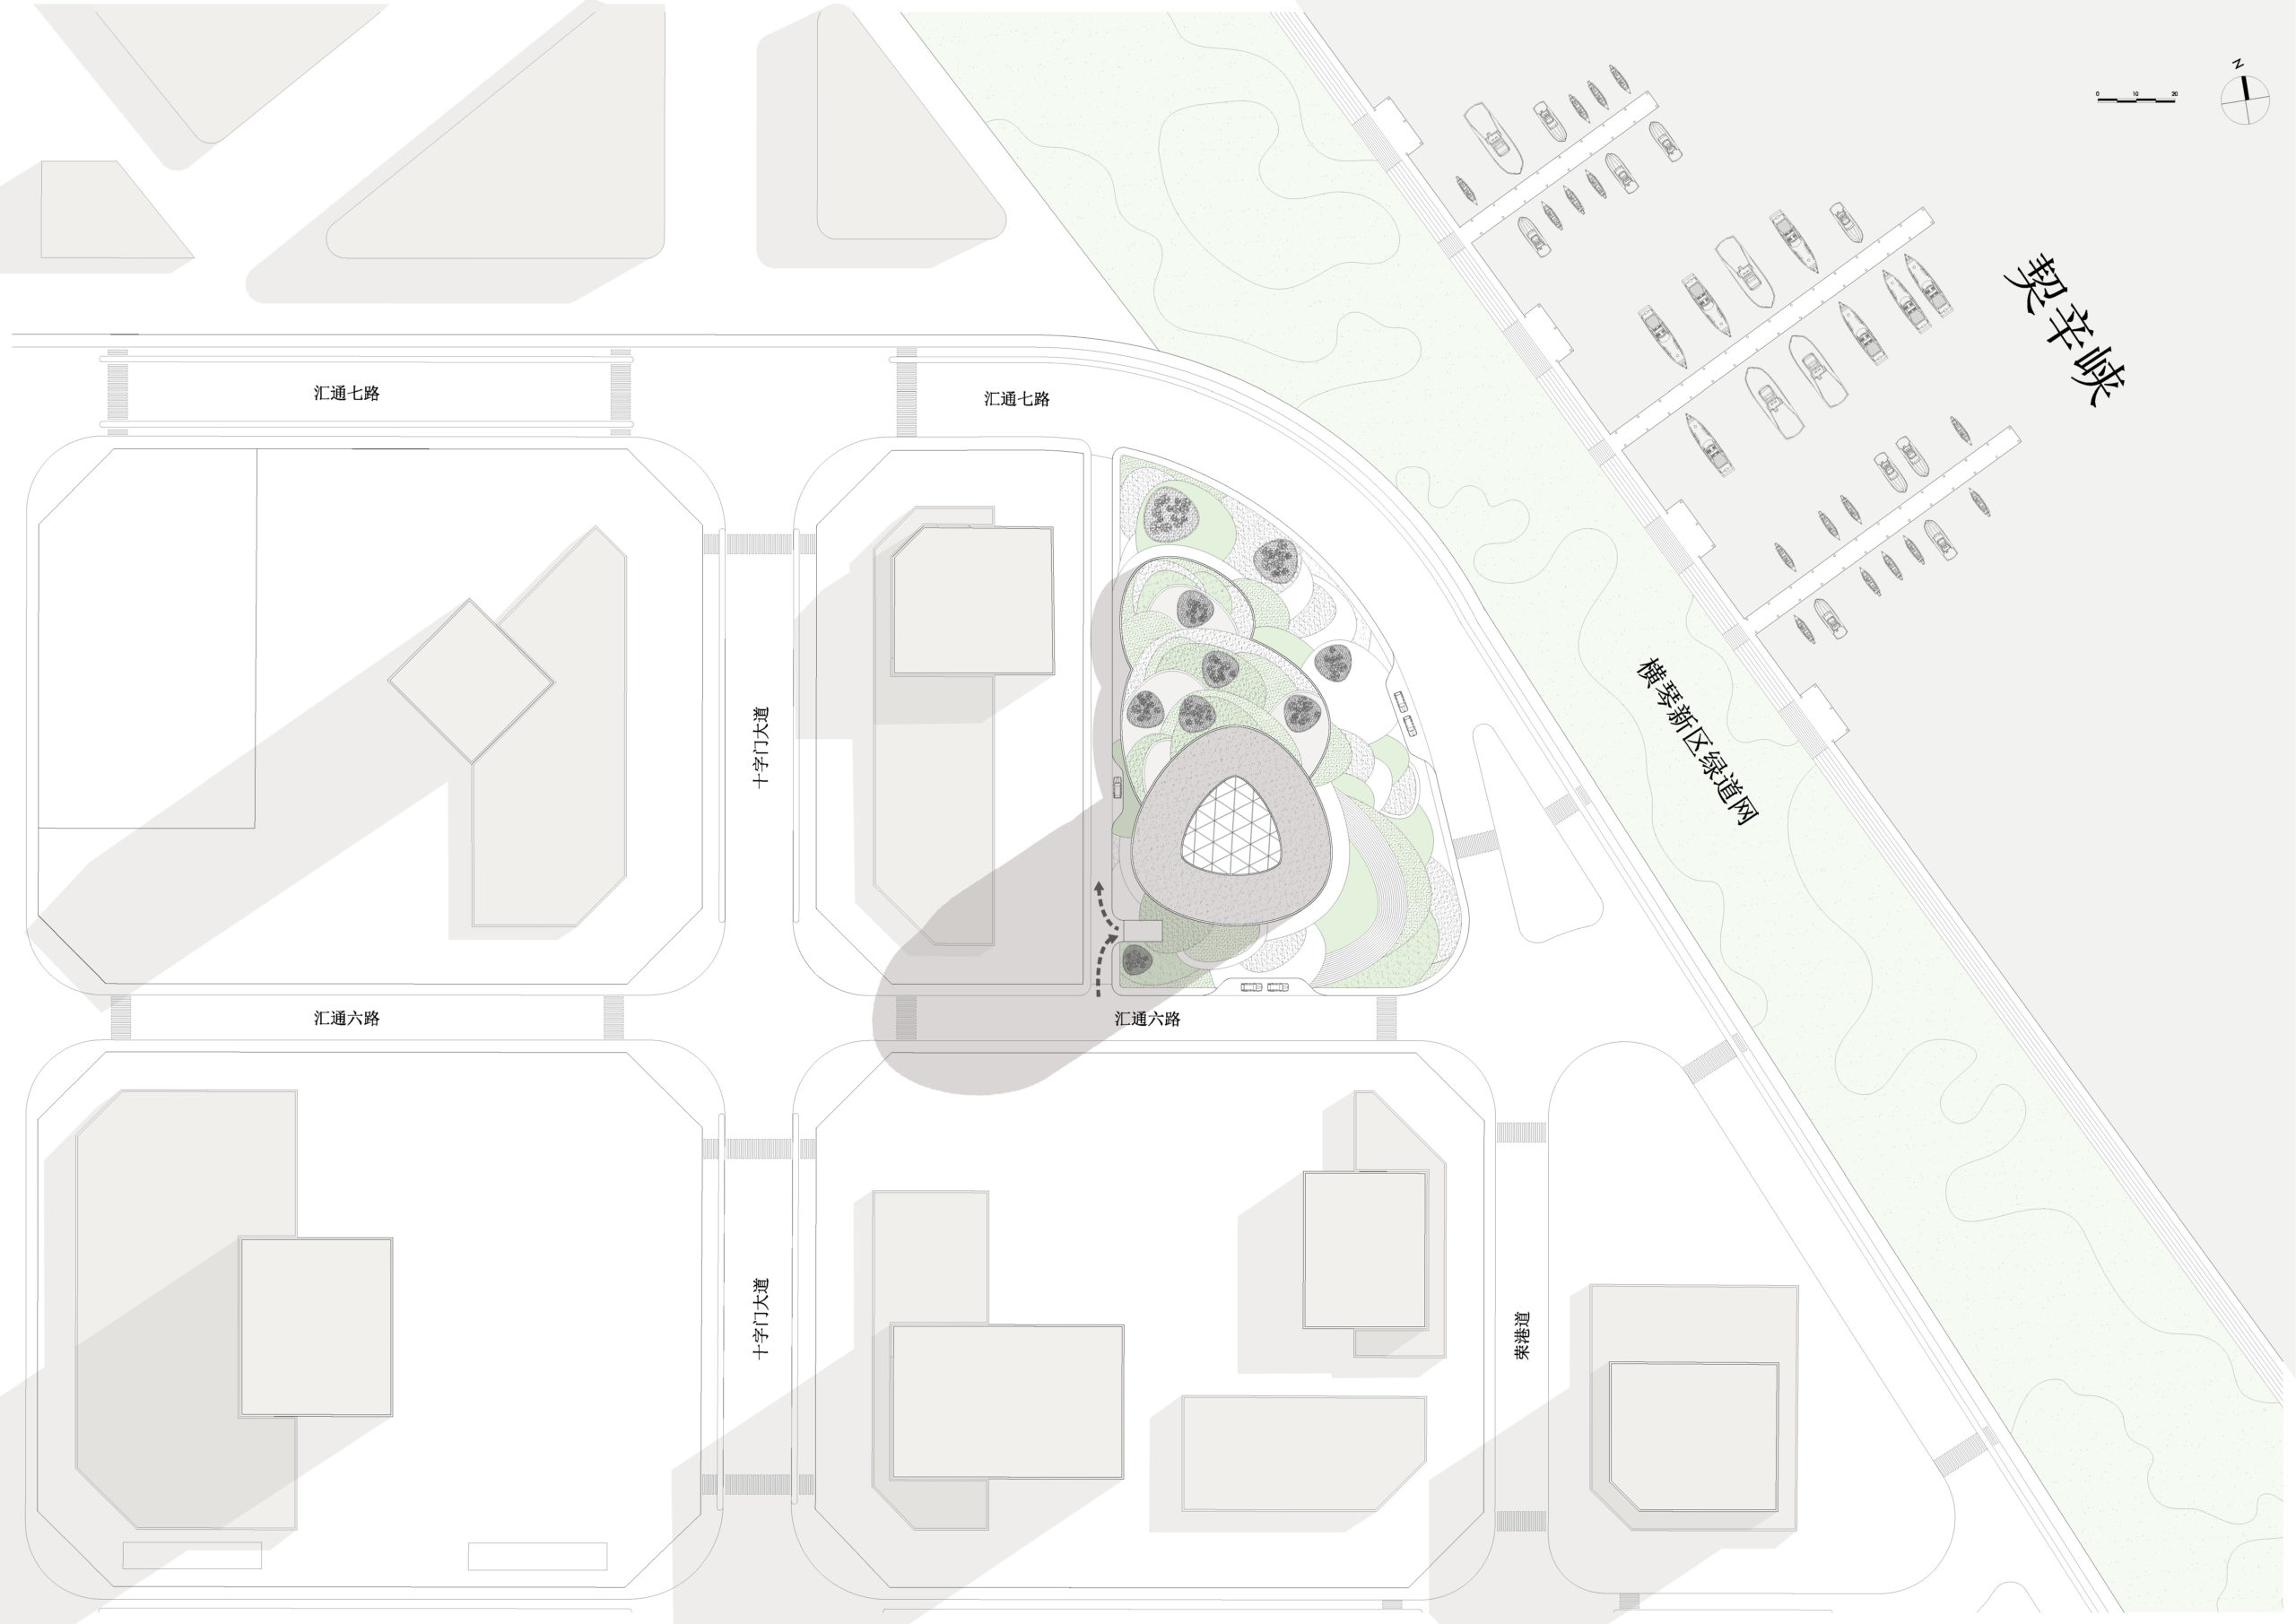 spatial practice architecture office Los Angeles Hong Kong Hengqin exchange square mixused tower zhuhai china site plan